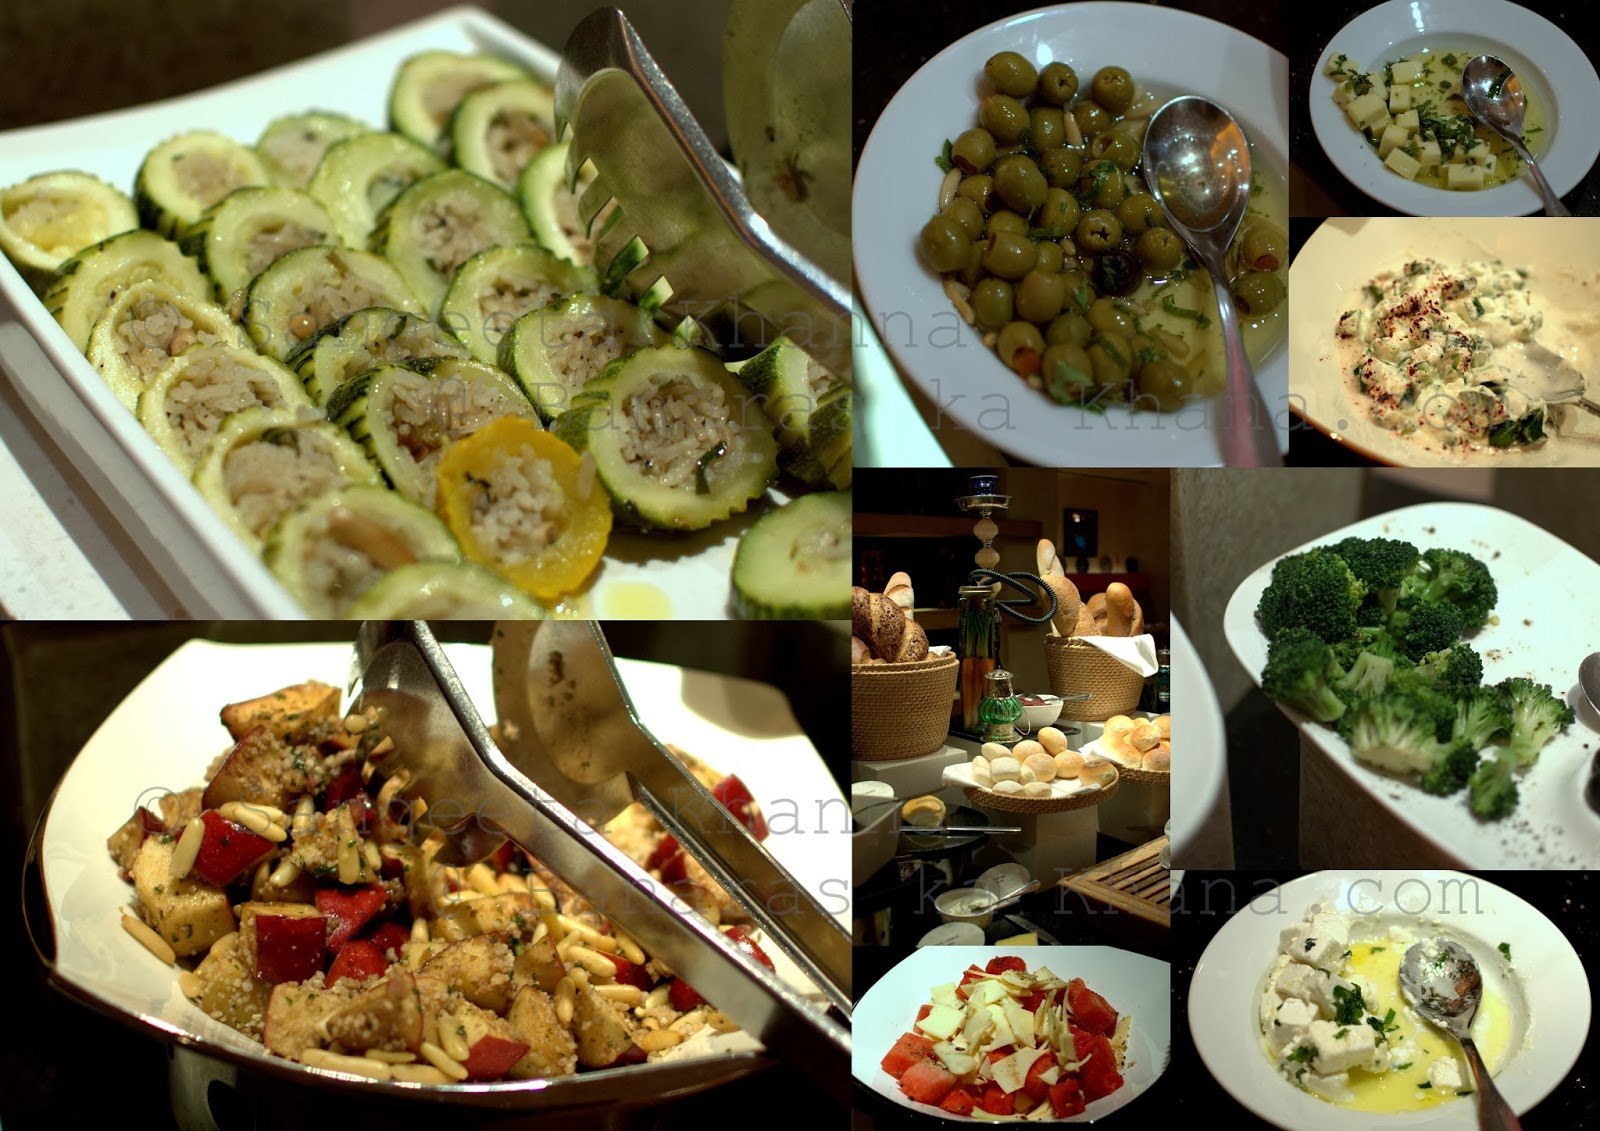 Turkish food festival at Shangri-La, some refreshing flavours, some known comforts, healthy options galore...